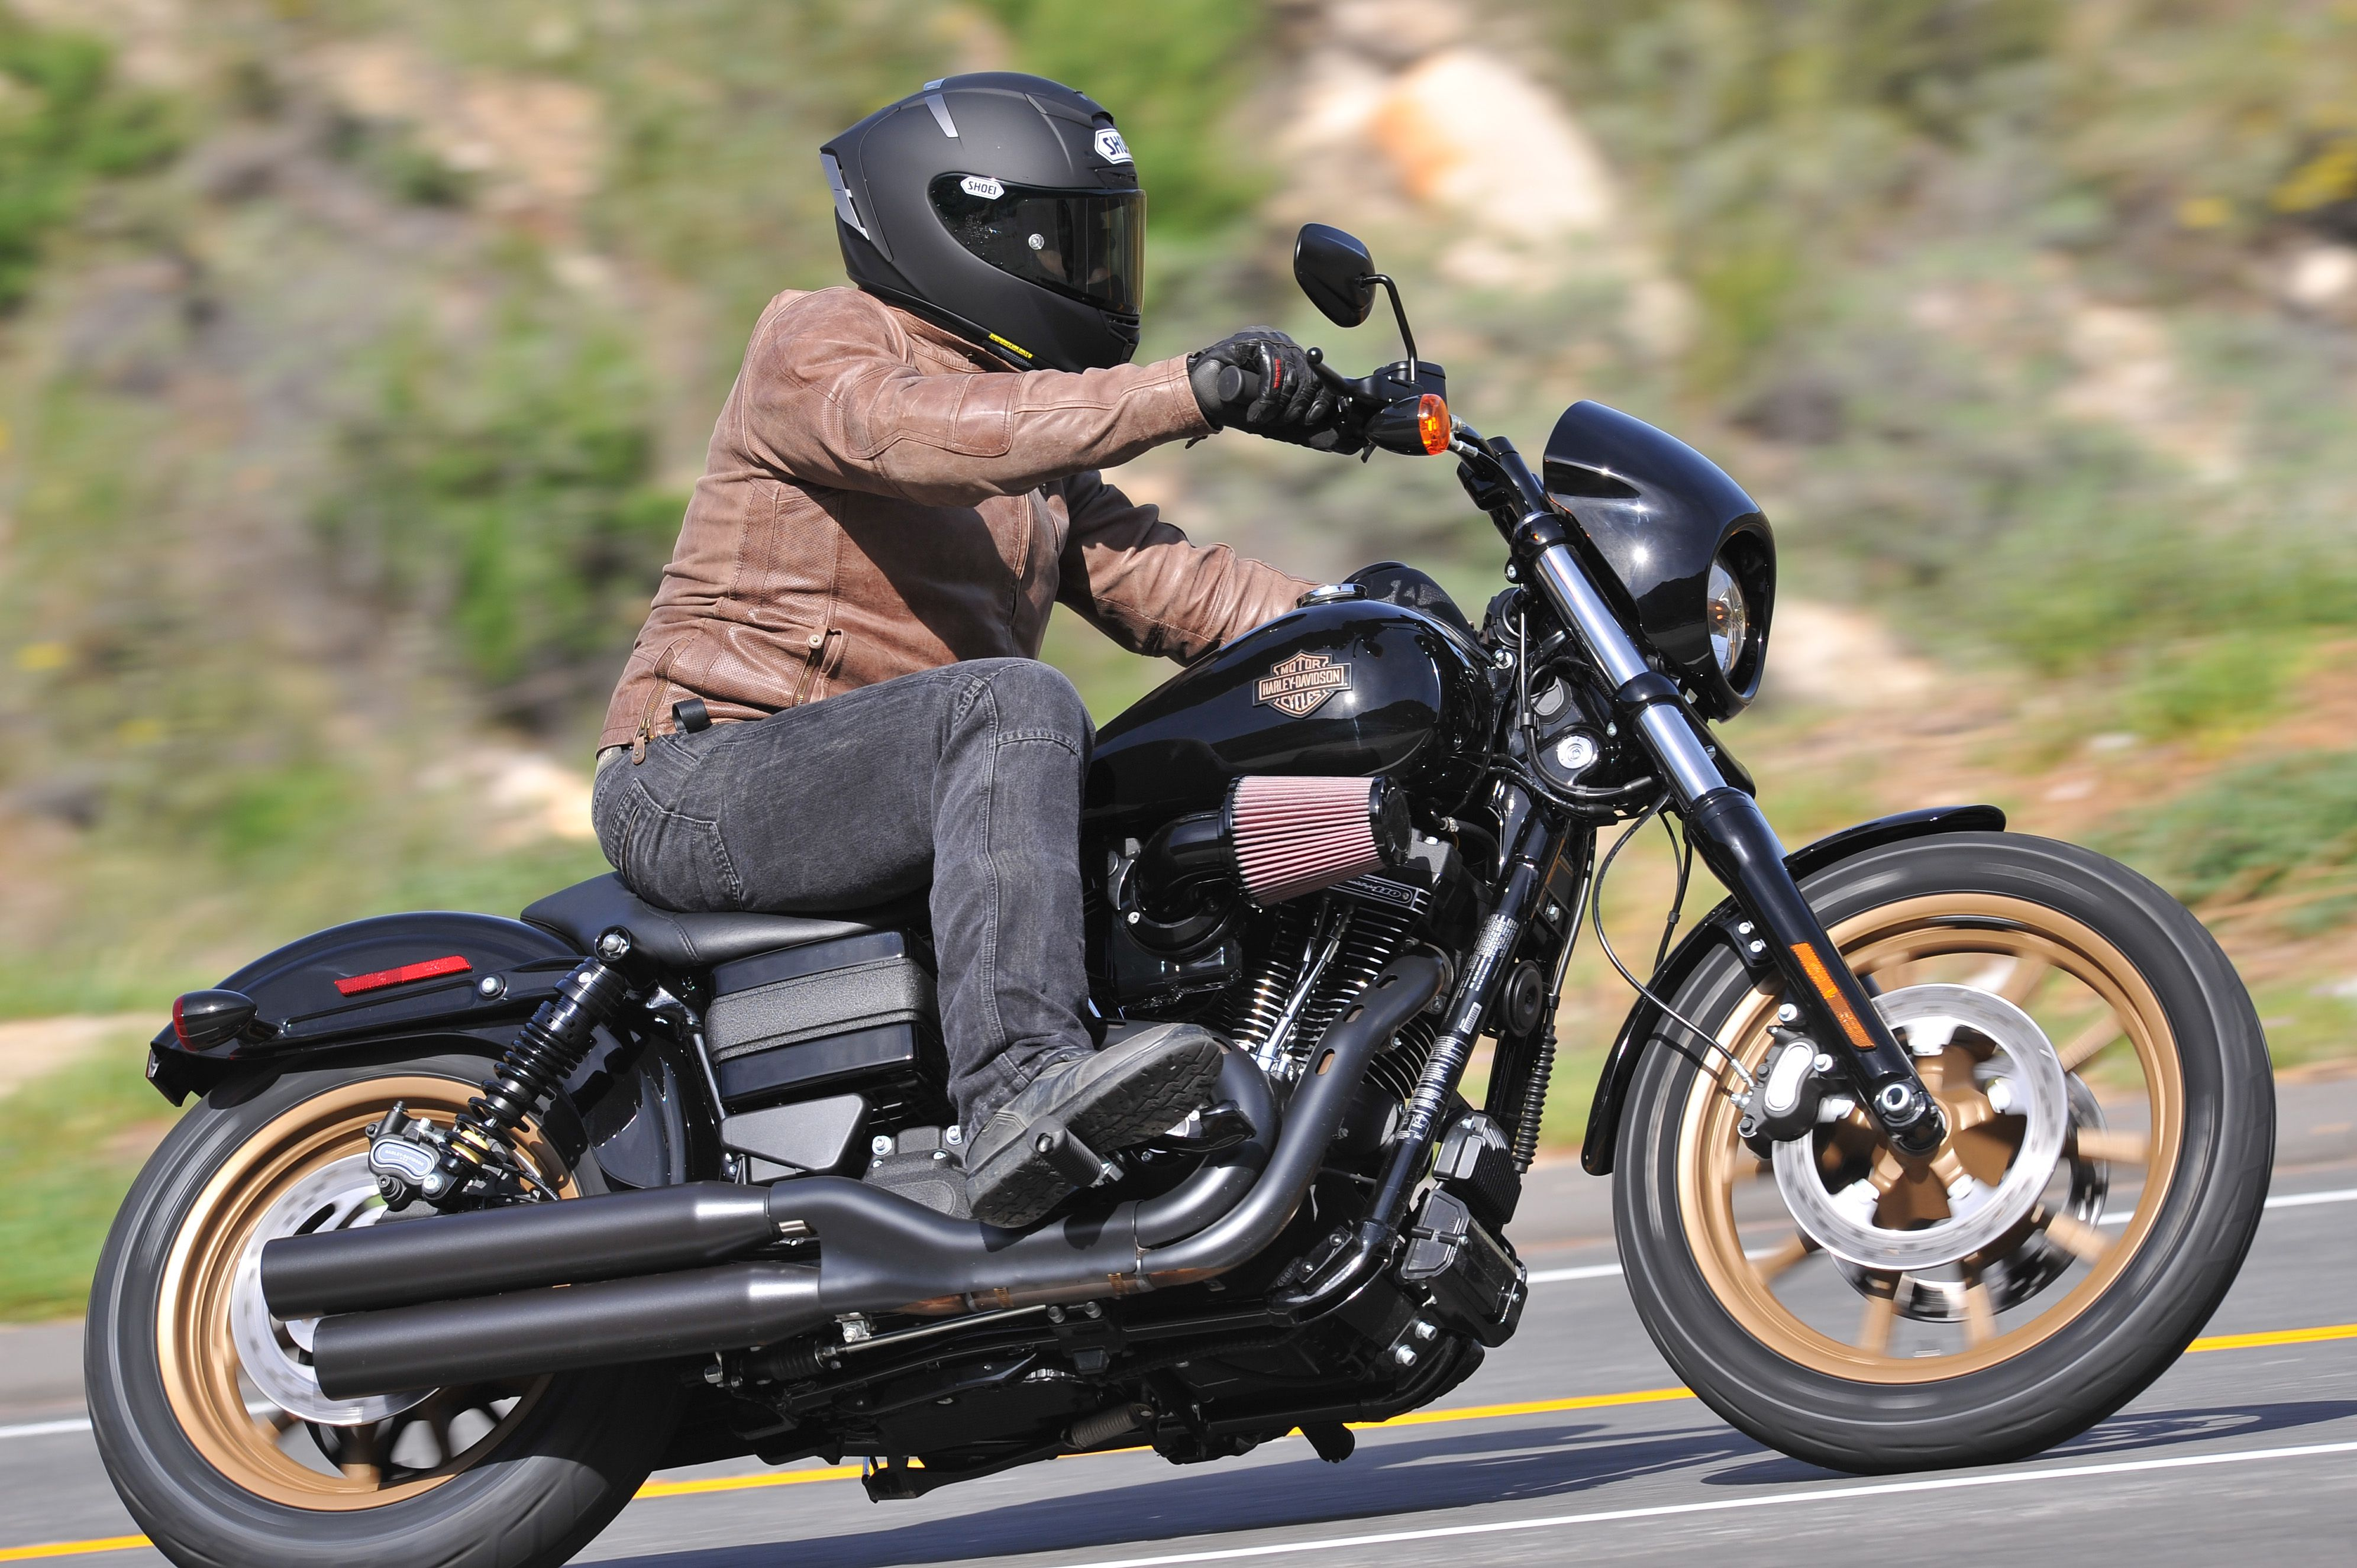 2016 Harley-Davidson FXDLS Dyna Low Rider S Review